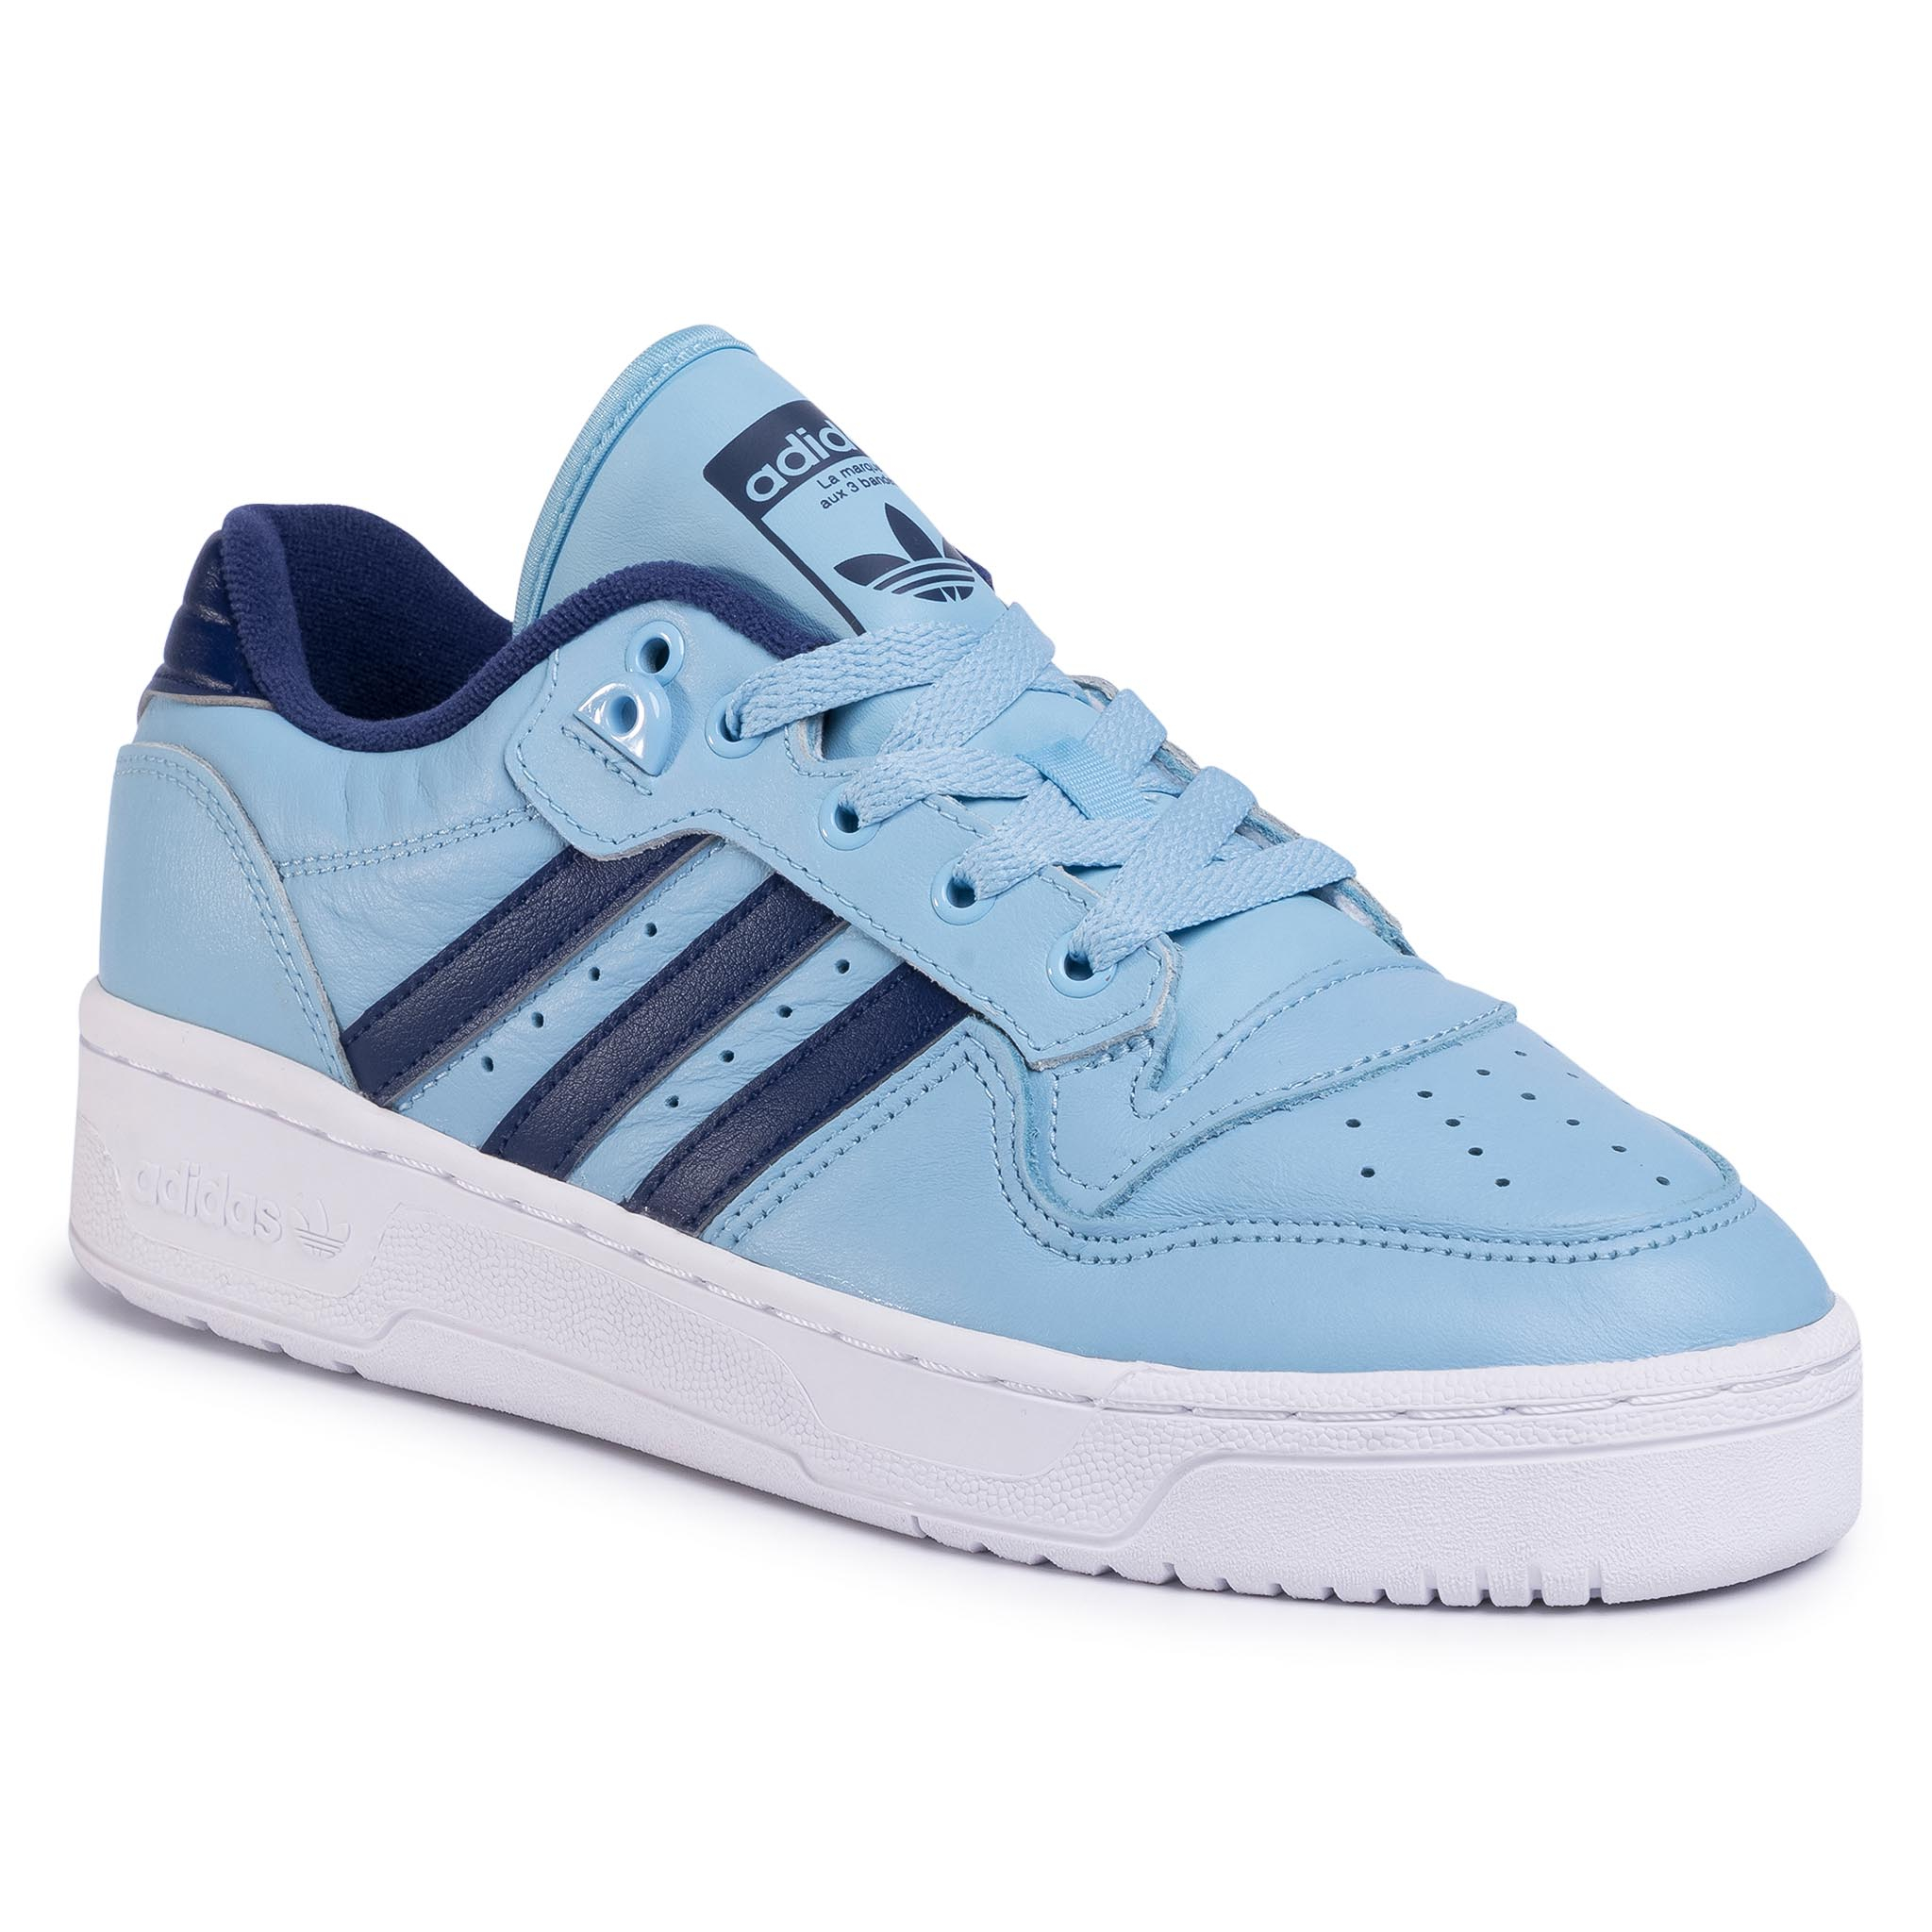 Batai adidas - Rivalry Low FV3349 Clblue/Dkblue/Ftwwht